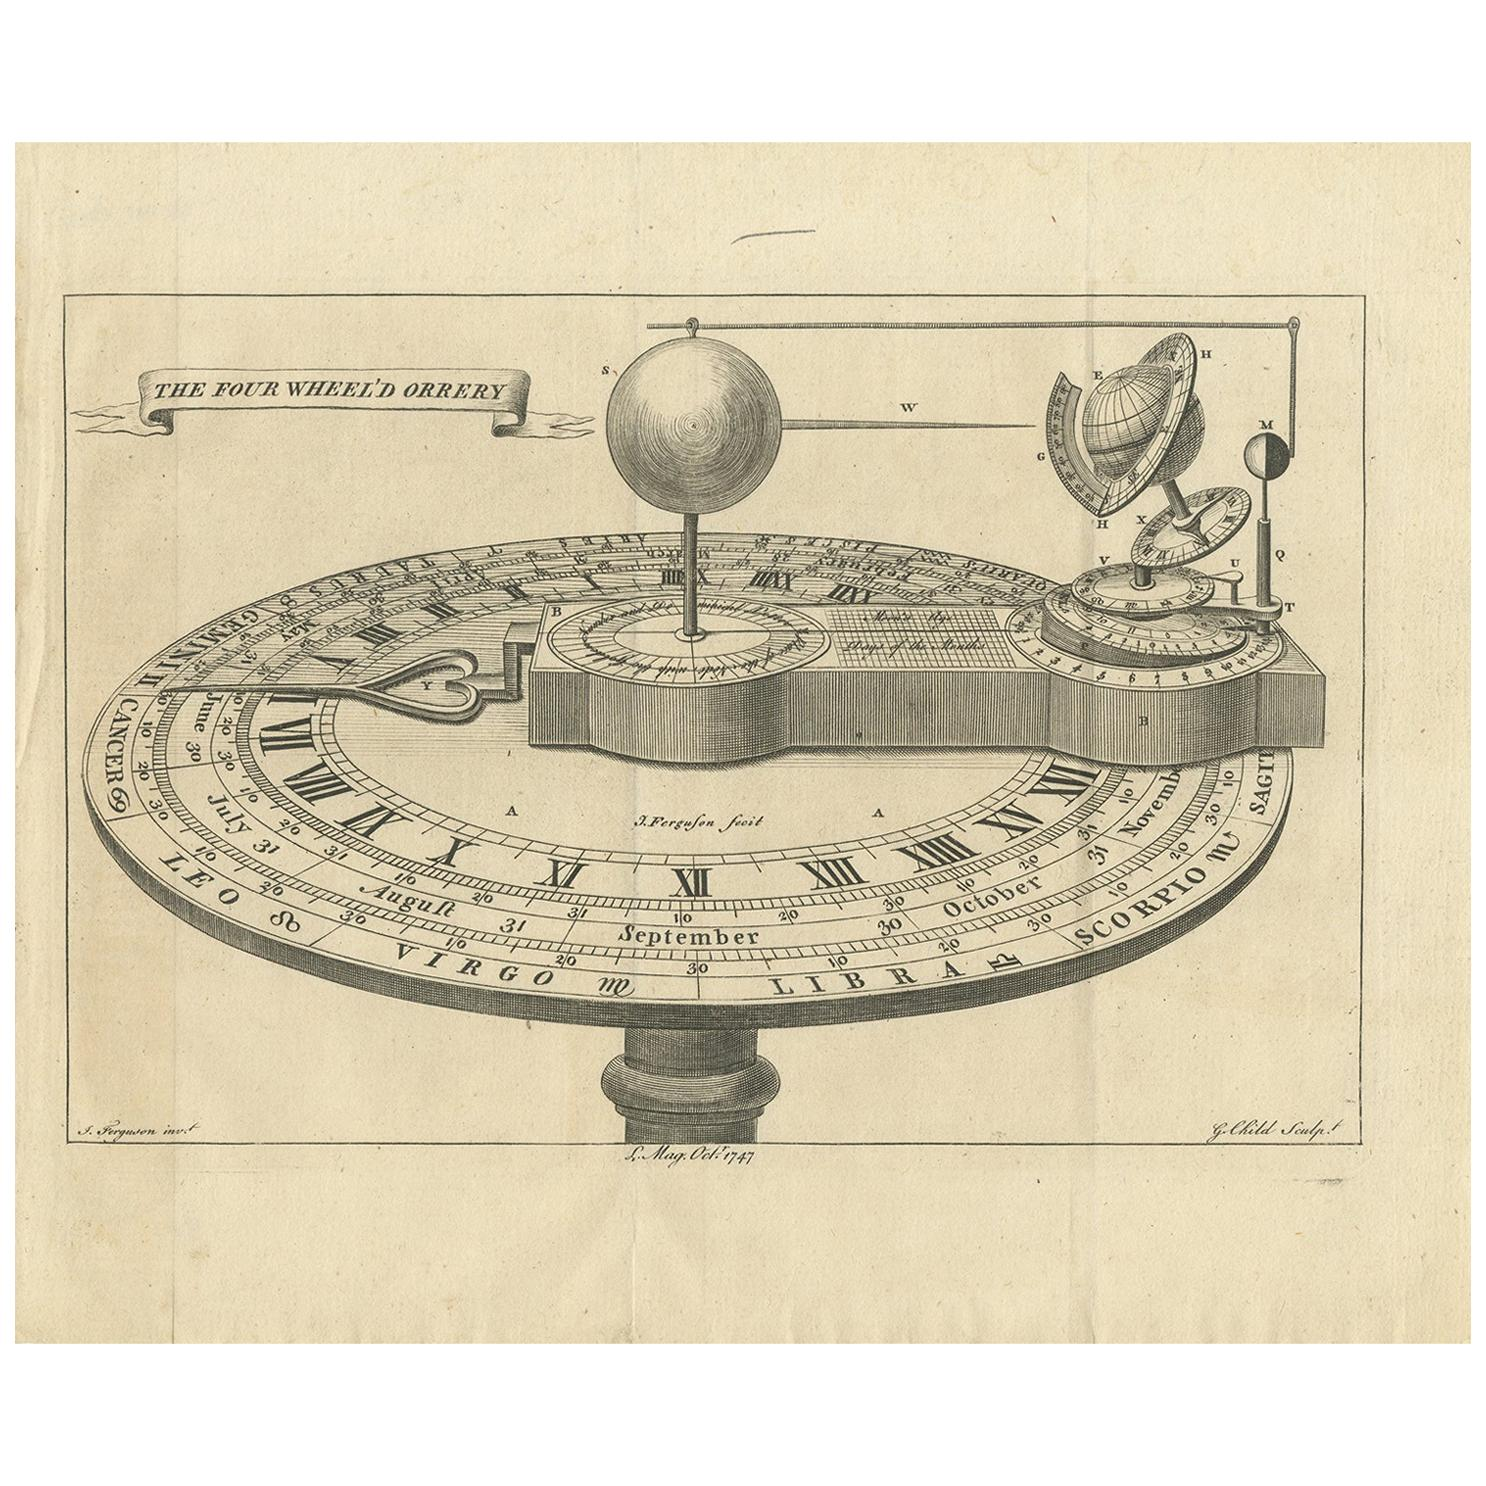 Antique Print of an Orrery by Ferguson, 1747